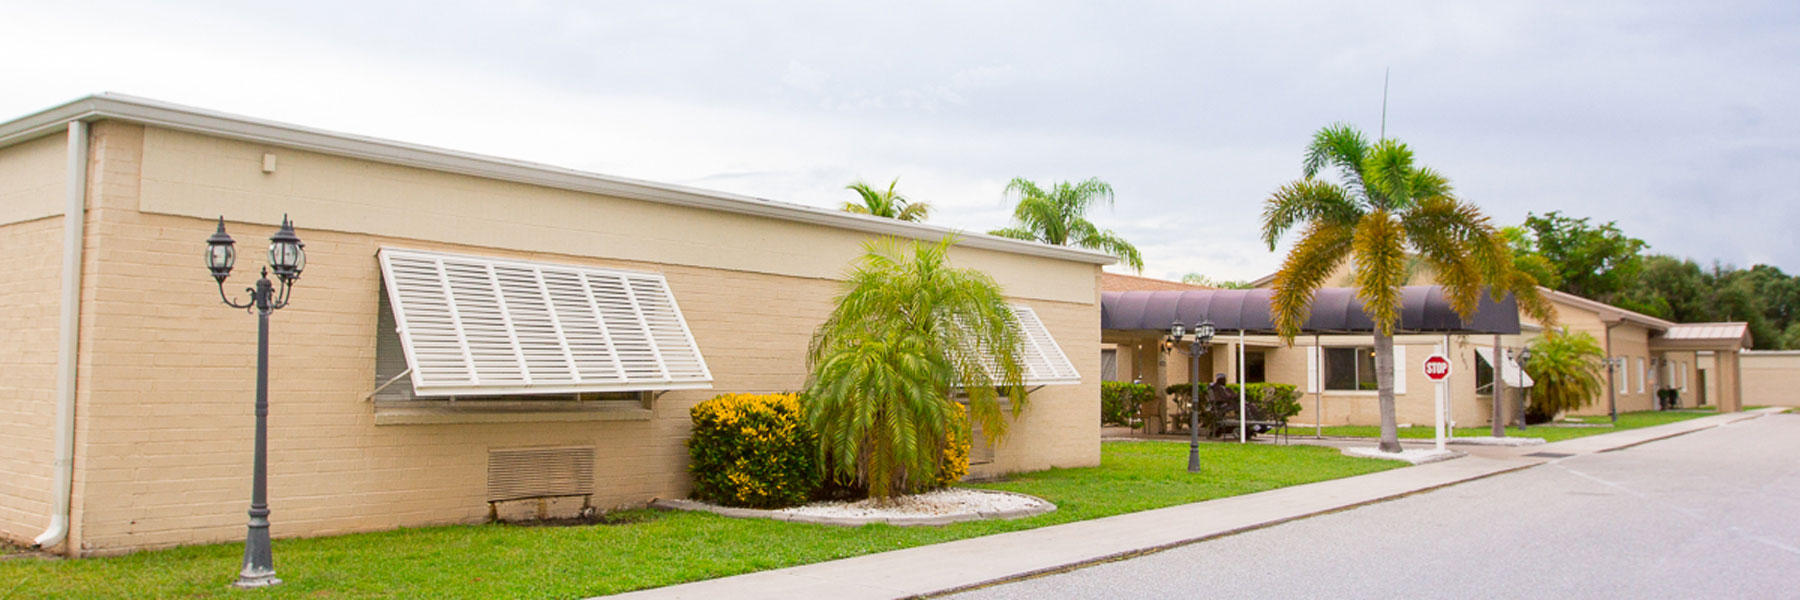 Florida Nursing Home Signature Healthcare Of Port Charlotte